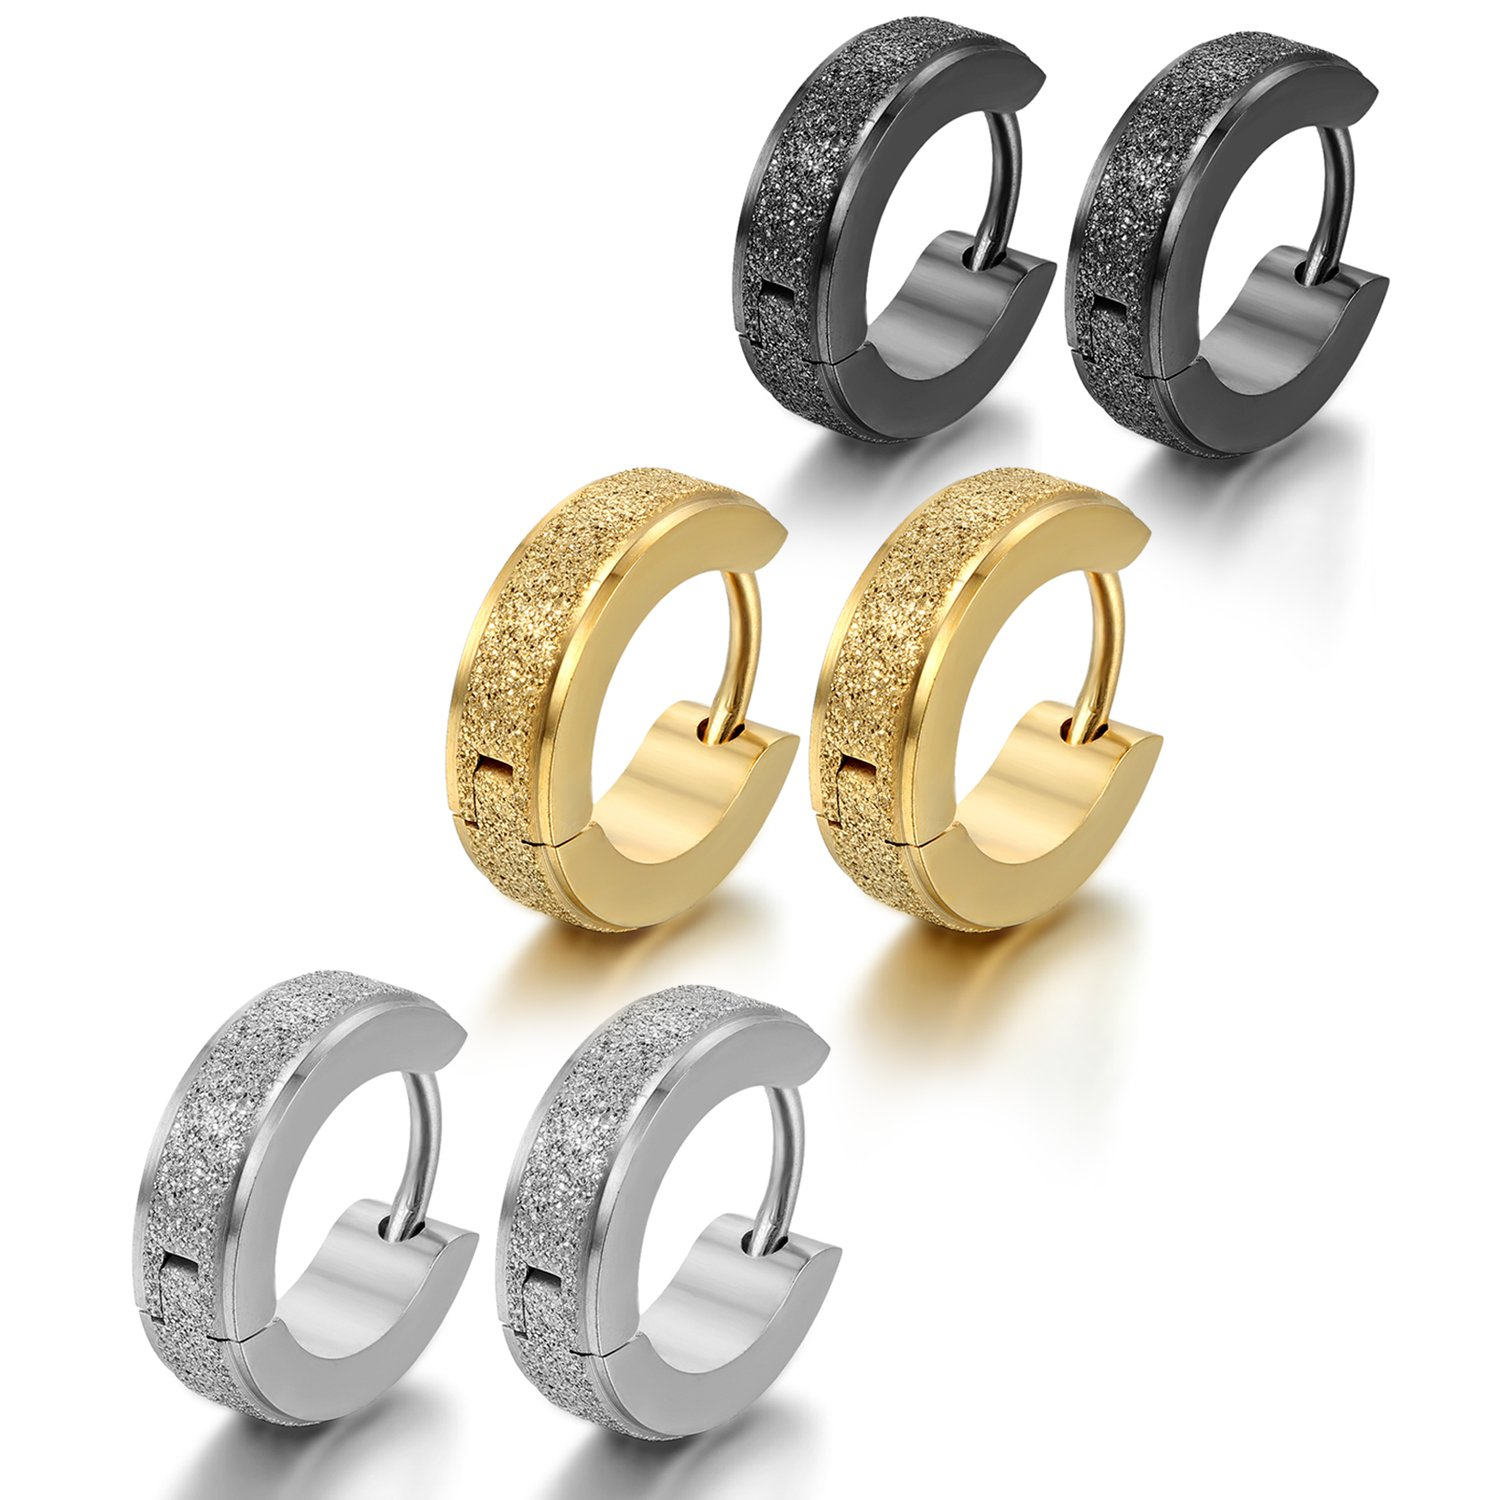 Oidea 6pcs 4MM Stainless Steel Hinge Hoop Earrings,Assorted Color Gold, Silver,Black,Hypoallergenic O030018-CA